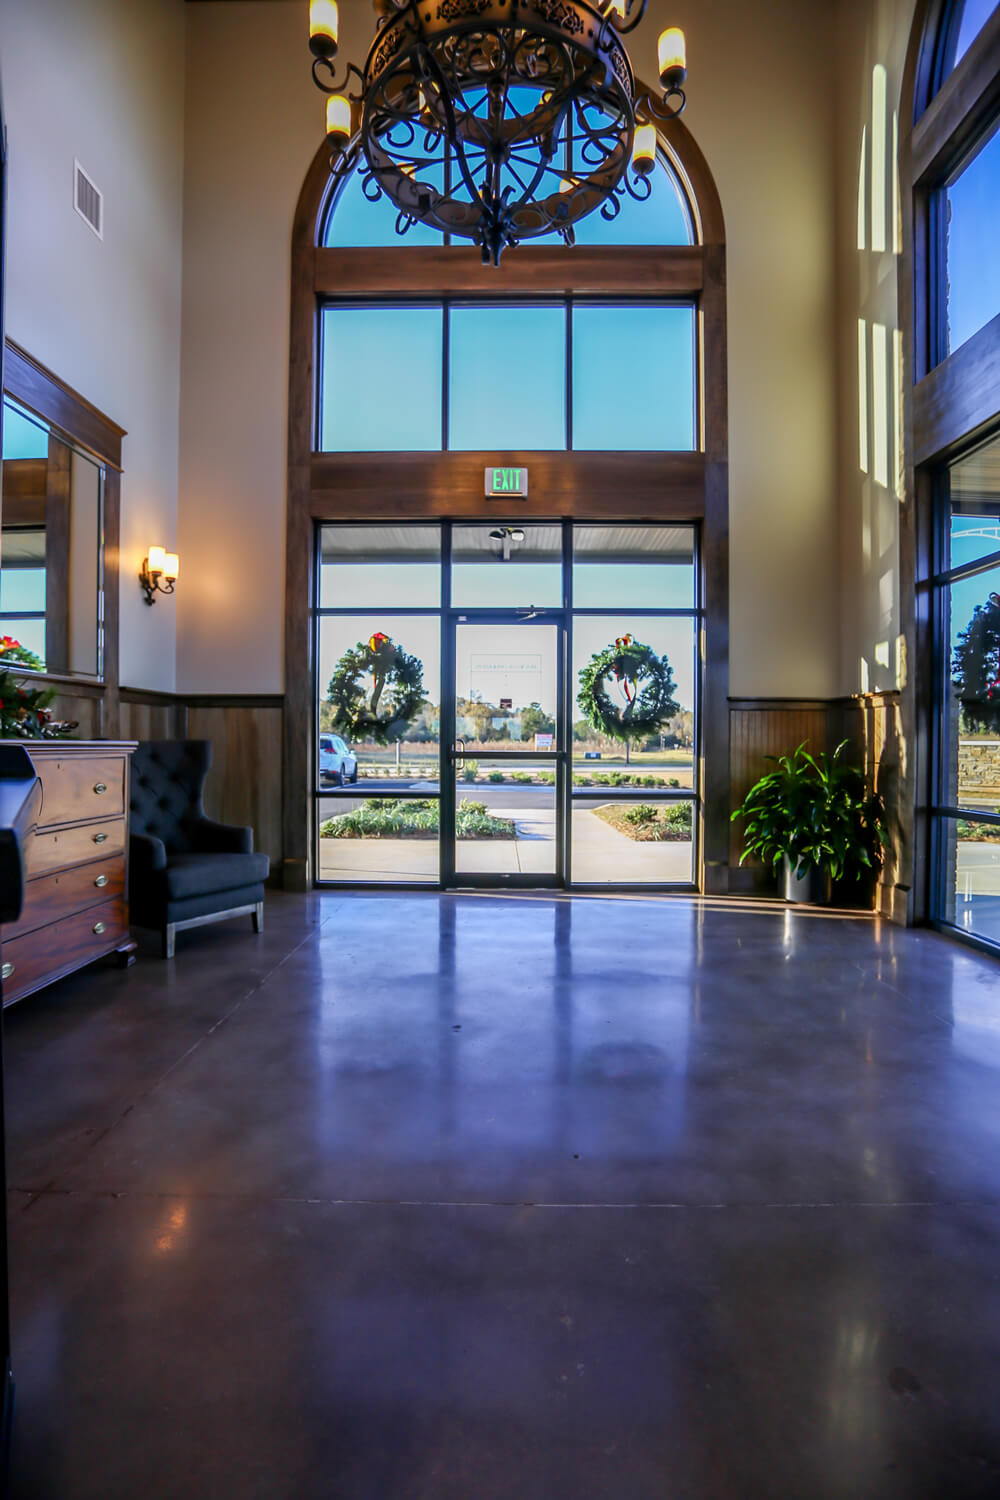 First Cahawba Bank - Entry Lobby - Designed by Foshee Architecture